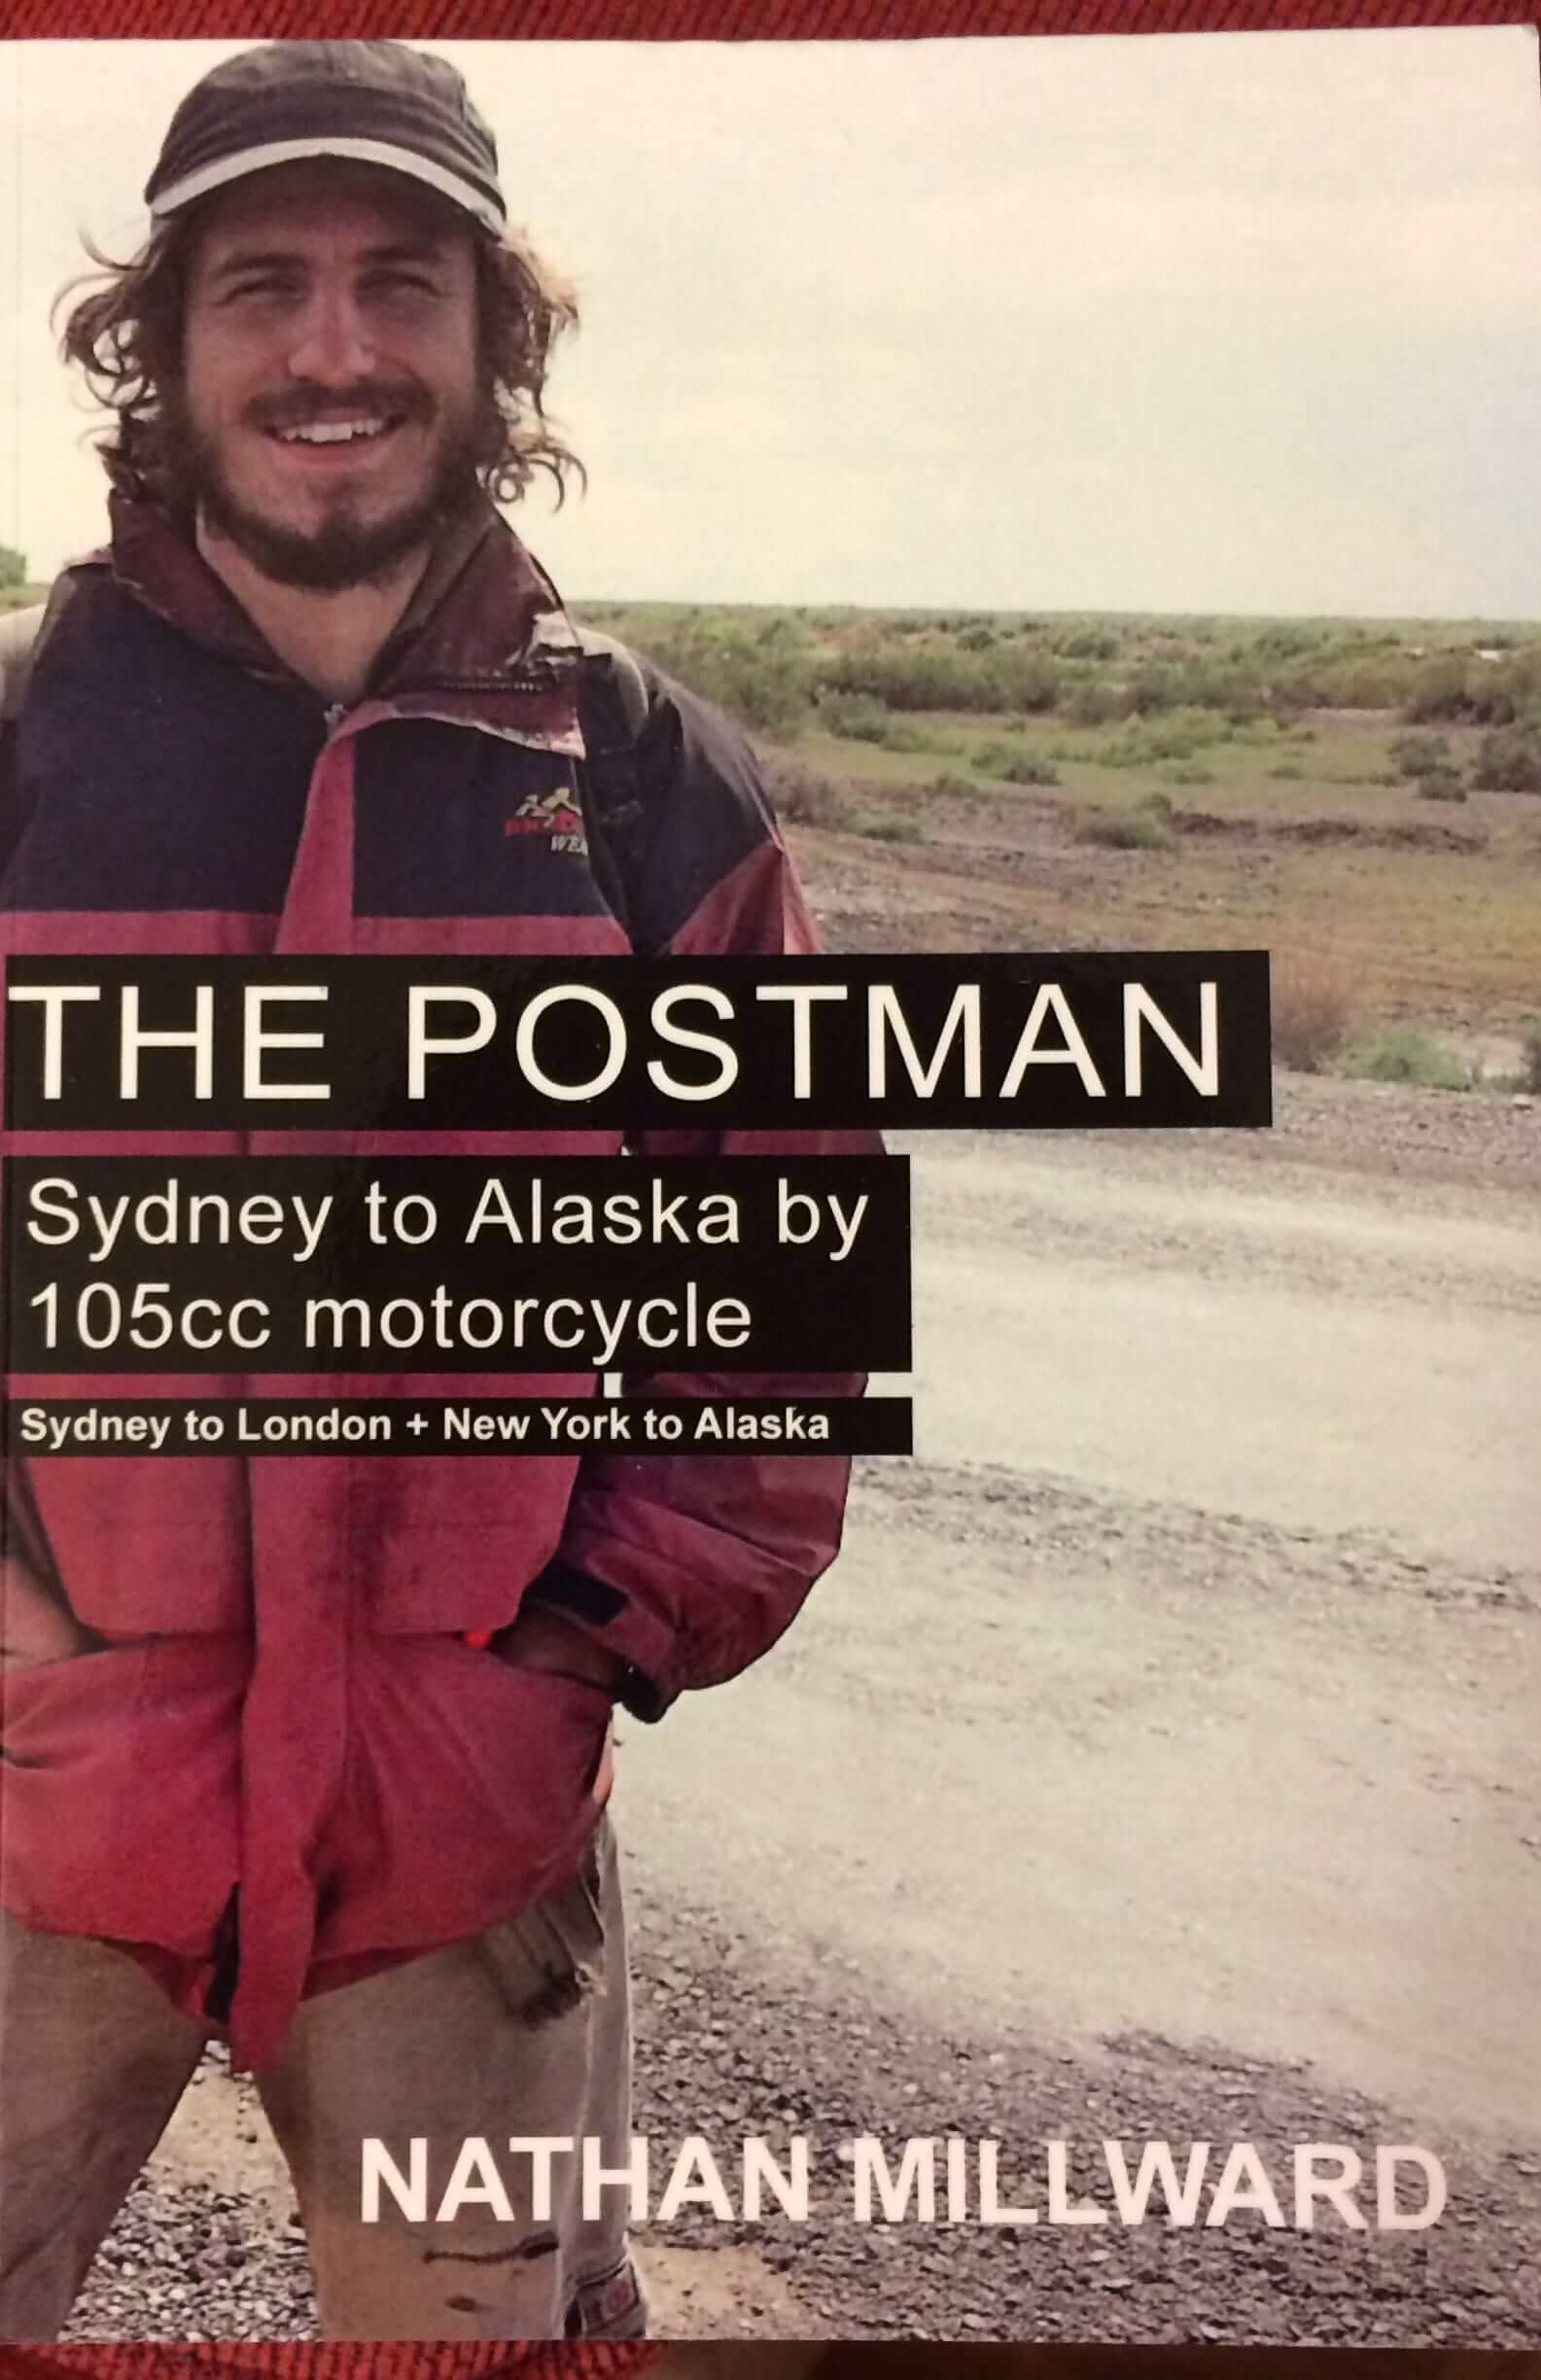 The Postman by Nathan Millward